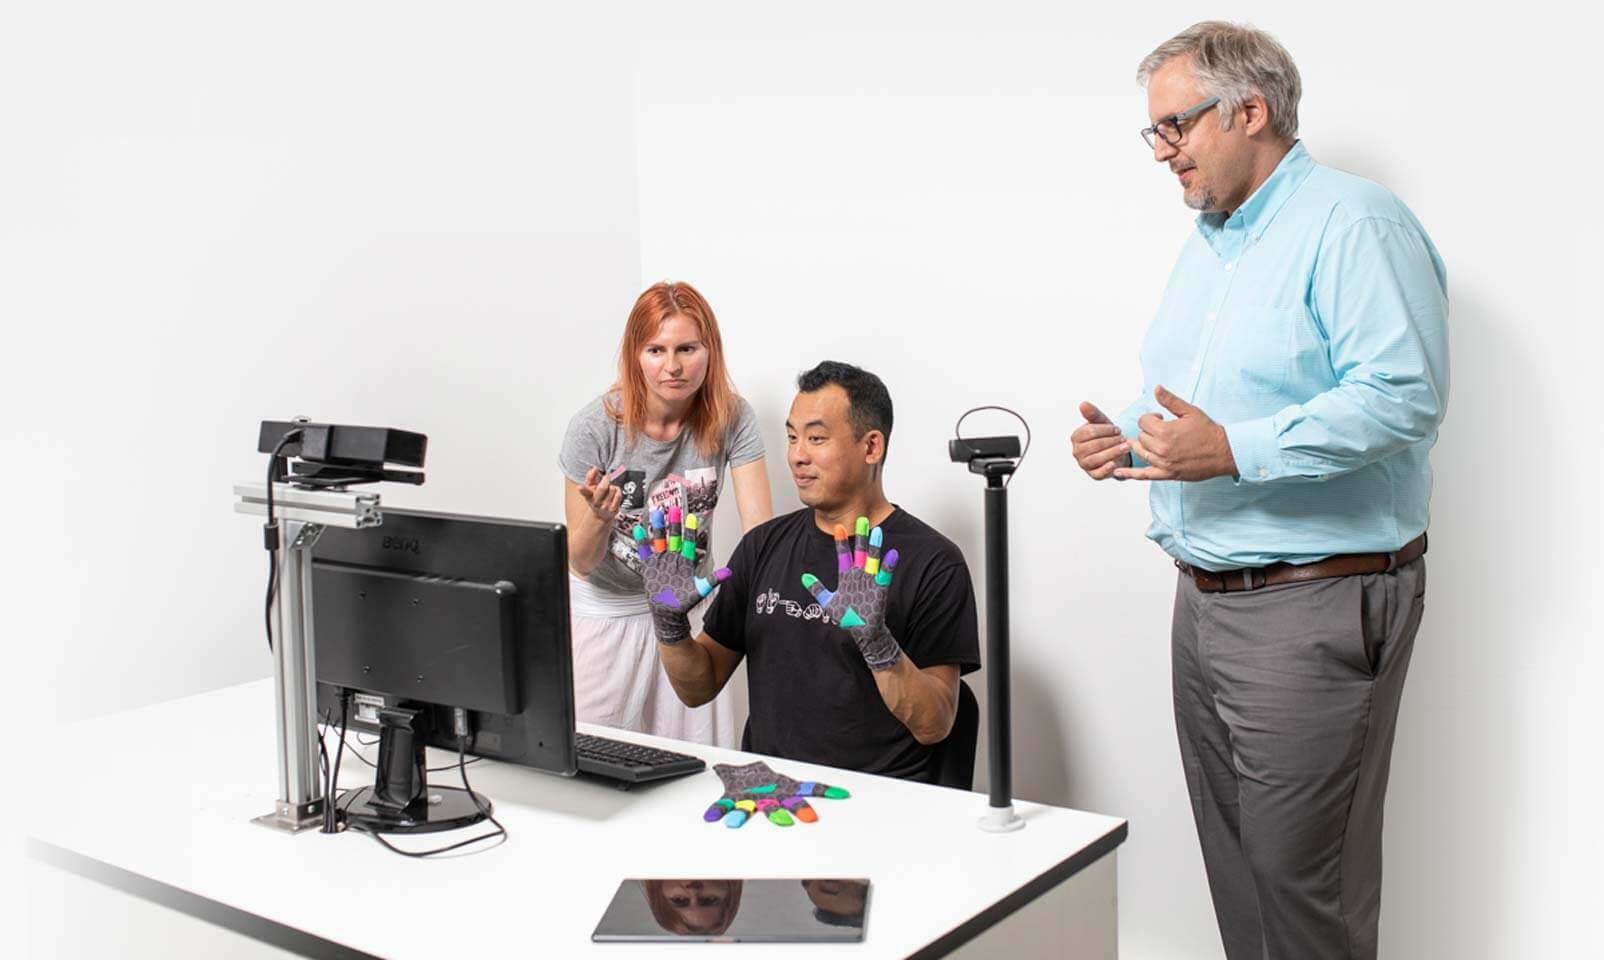 A white woman, a man of color,and a white man look on a computer screen and discuss what they see. Man of color is signing  in special signing gloves